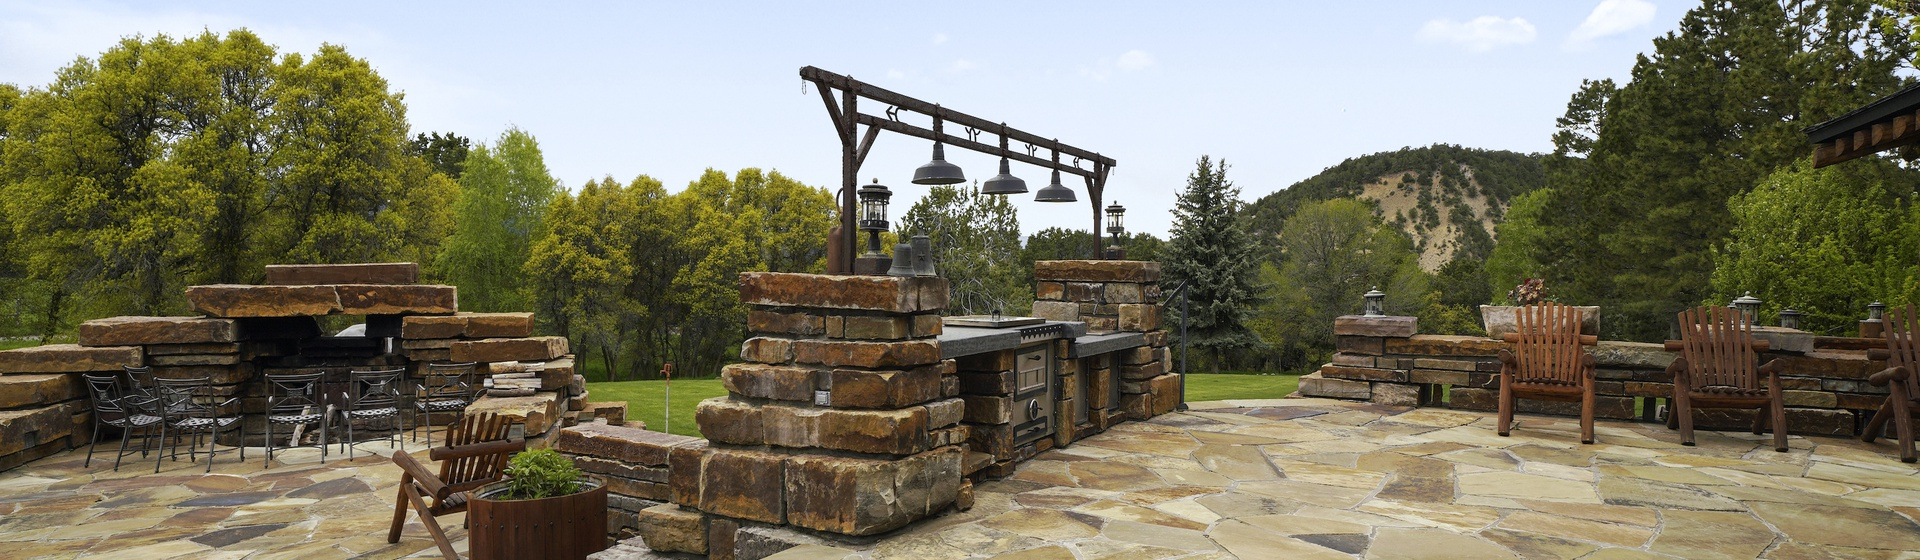 12.2-Telluride-Sleeping-Indian-Ranch-stone-terrace-grilling-station-2-web.JPG